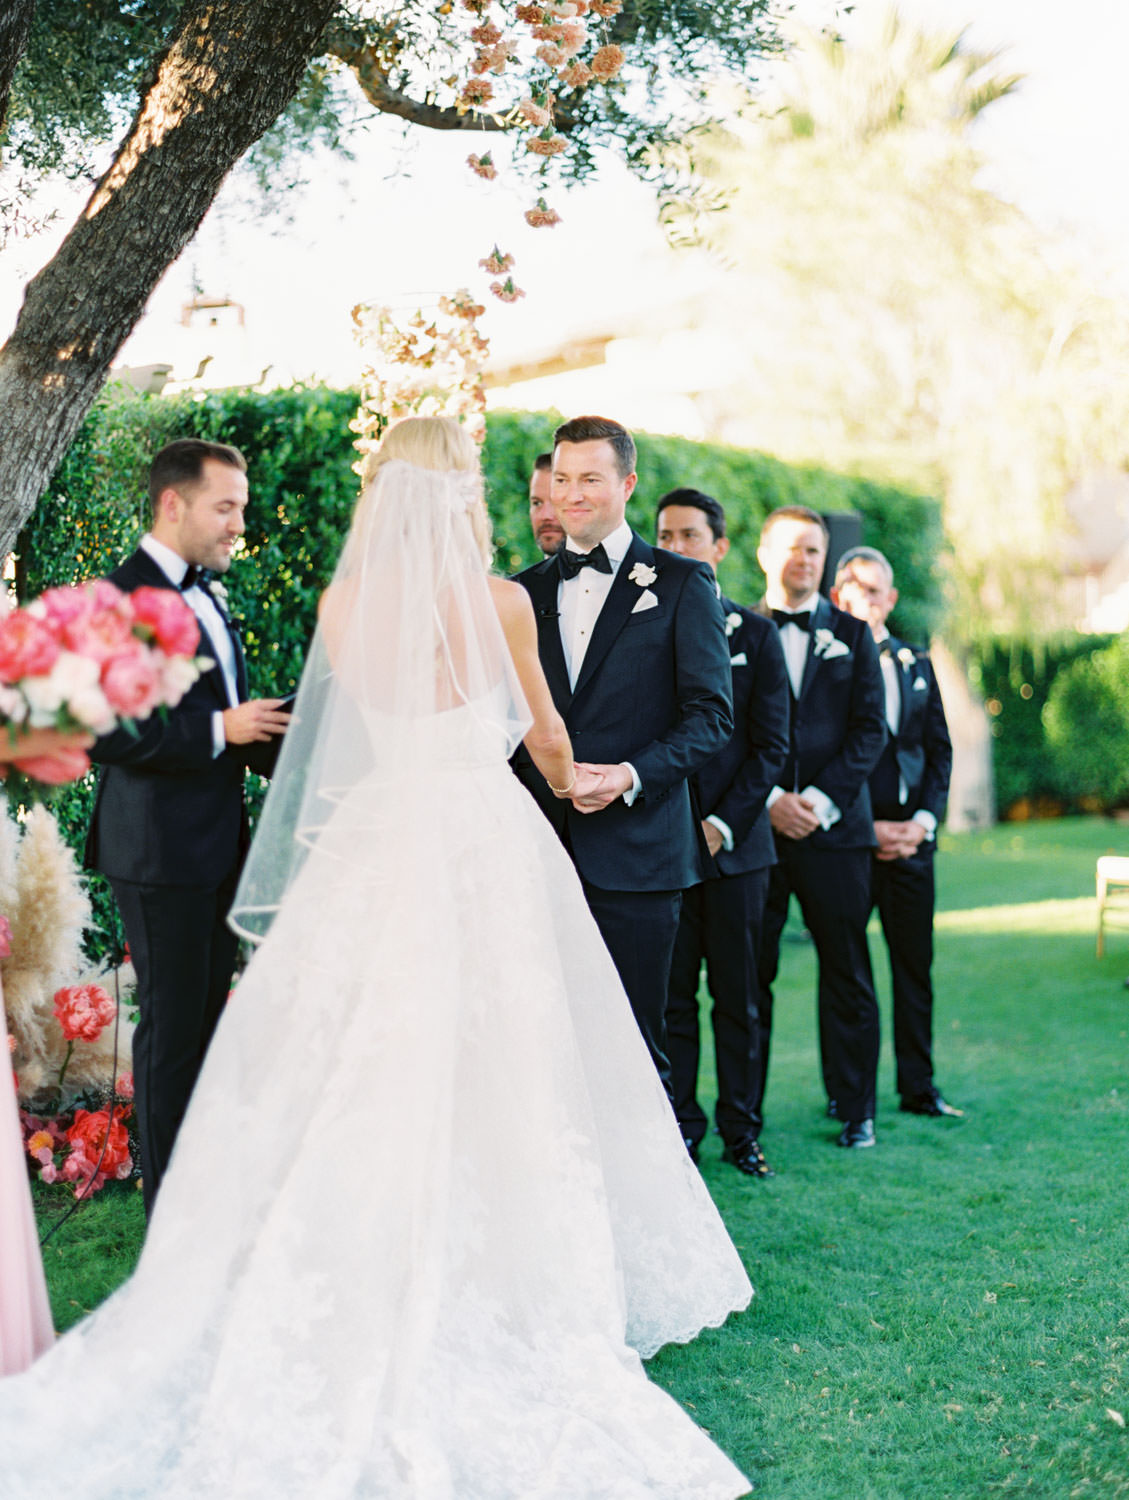 Groom smiling at the bride during the wedding ceremony. Miramonte Resort ceremony on Miramonte Green. Film photography by Cavin Elizabeth.